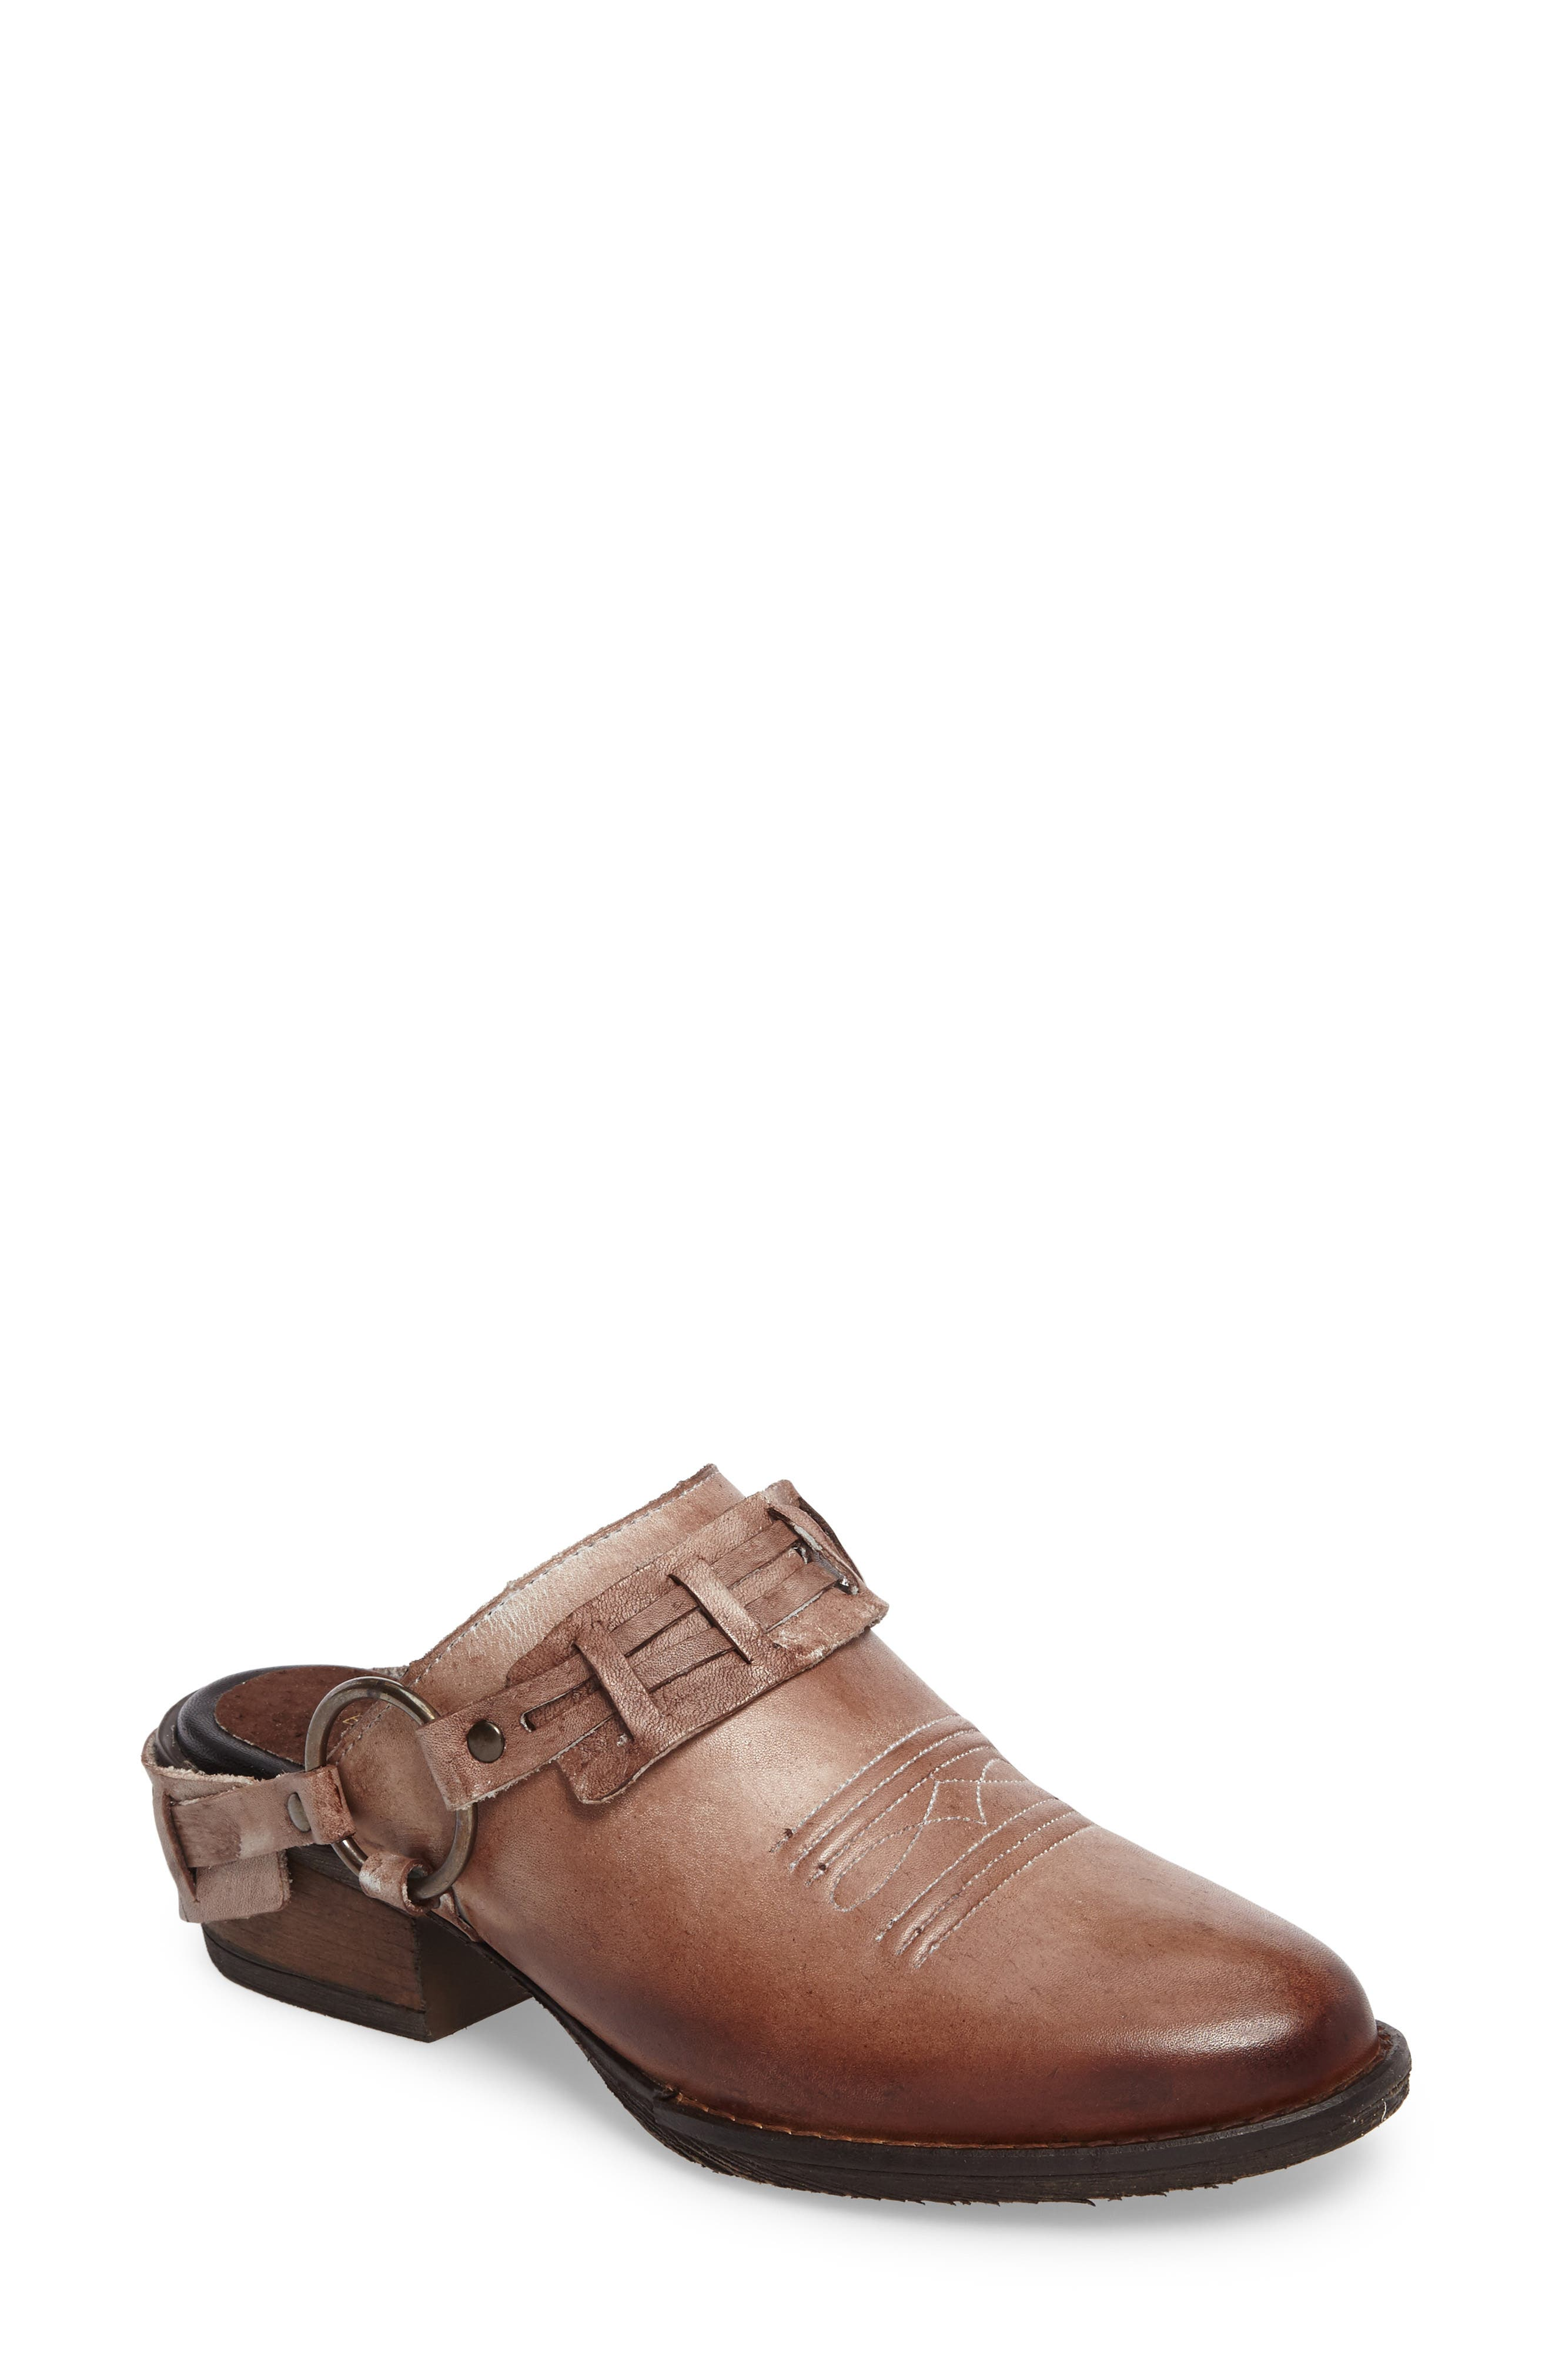 Eriko Western Harness Mule,                             Main thumbnail 1, color,                             Brown